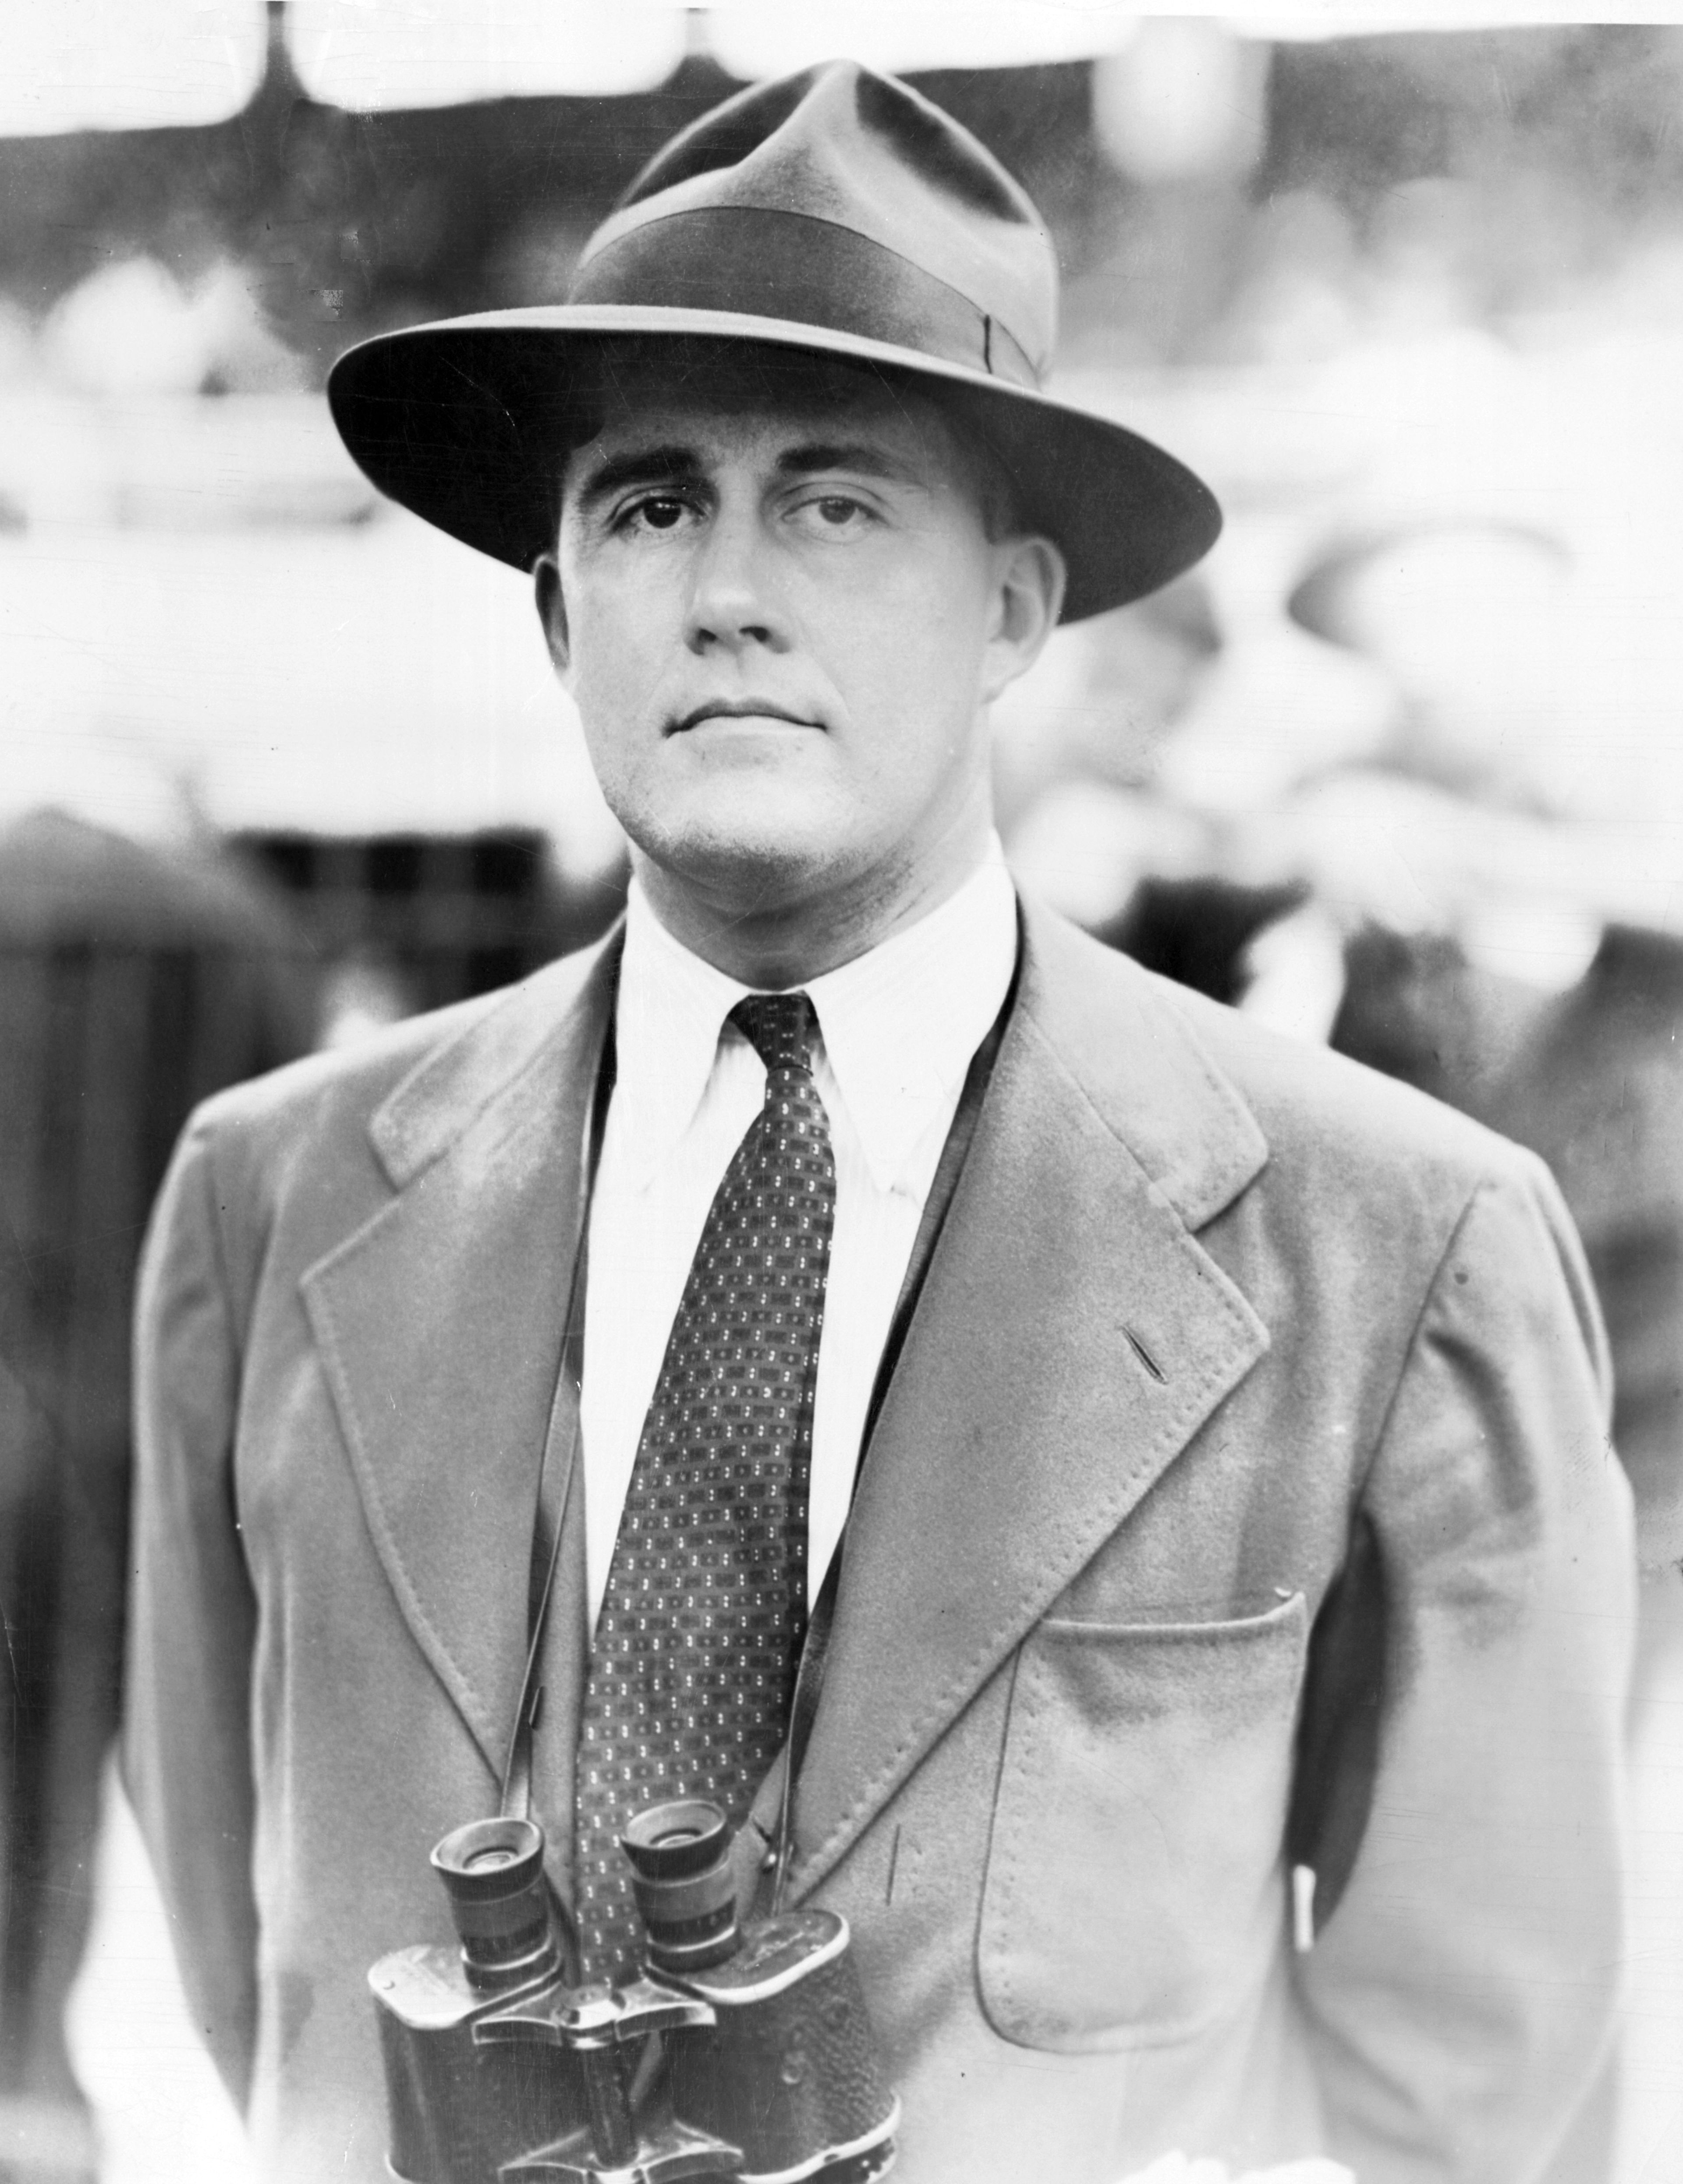 J. Keene Daingerfield, Jr. (Keeneland Library Thoroughbred Times Collection)